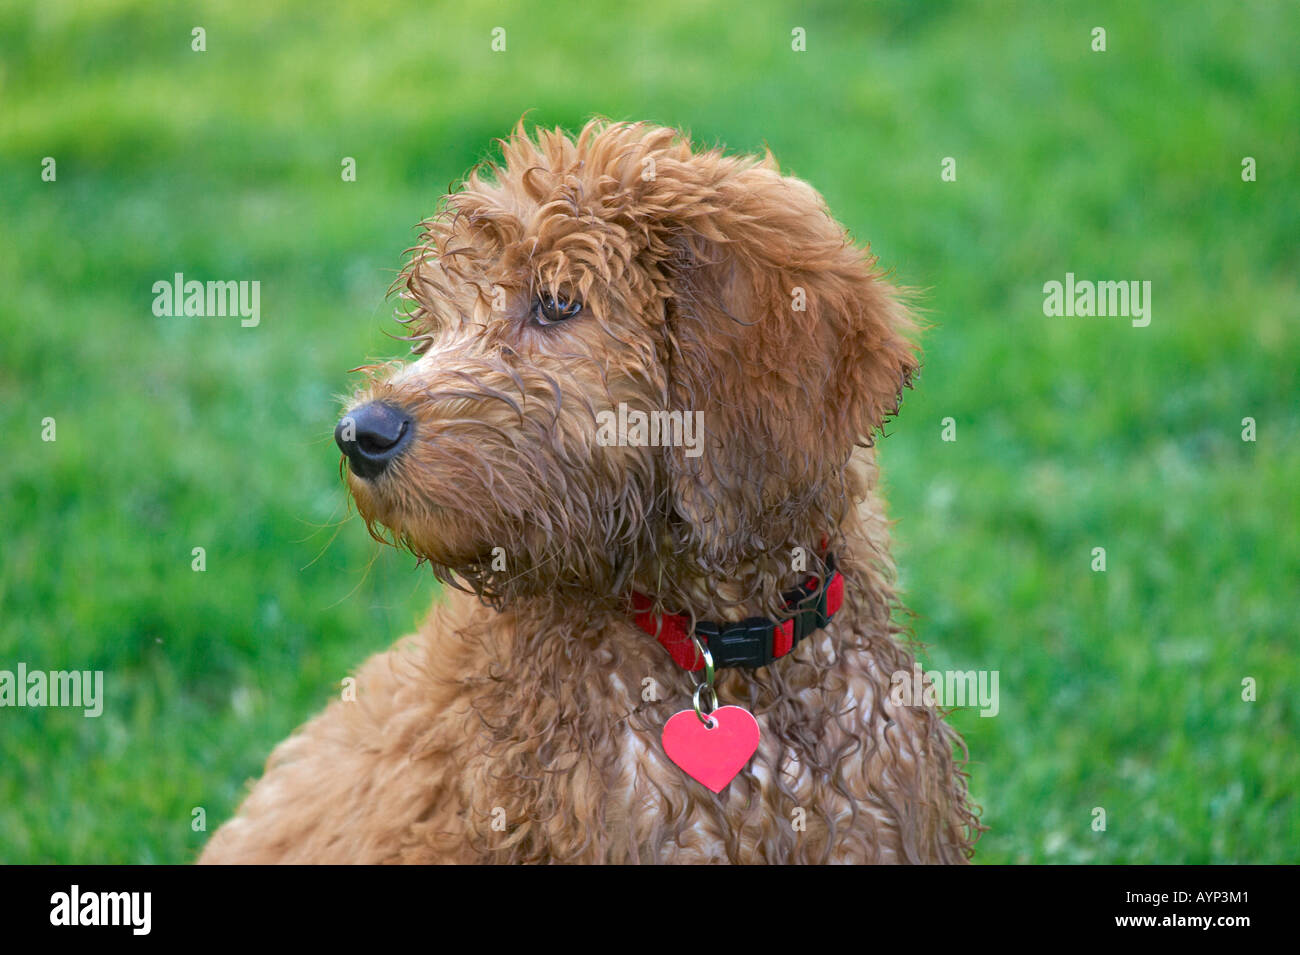 Golden retriver doodle poodle dog puppy dog fuzzy cheveux bouclés Photo Stock